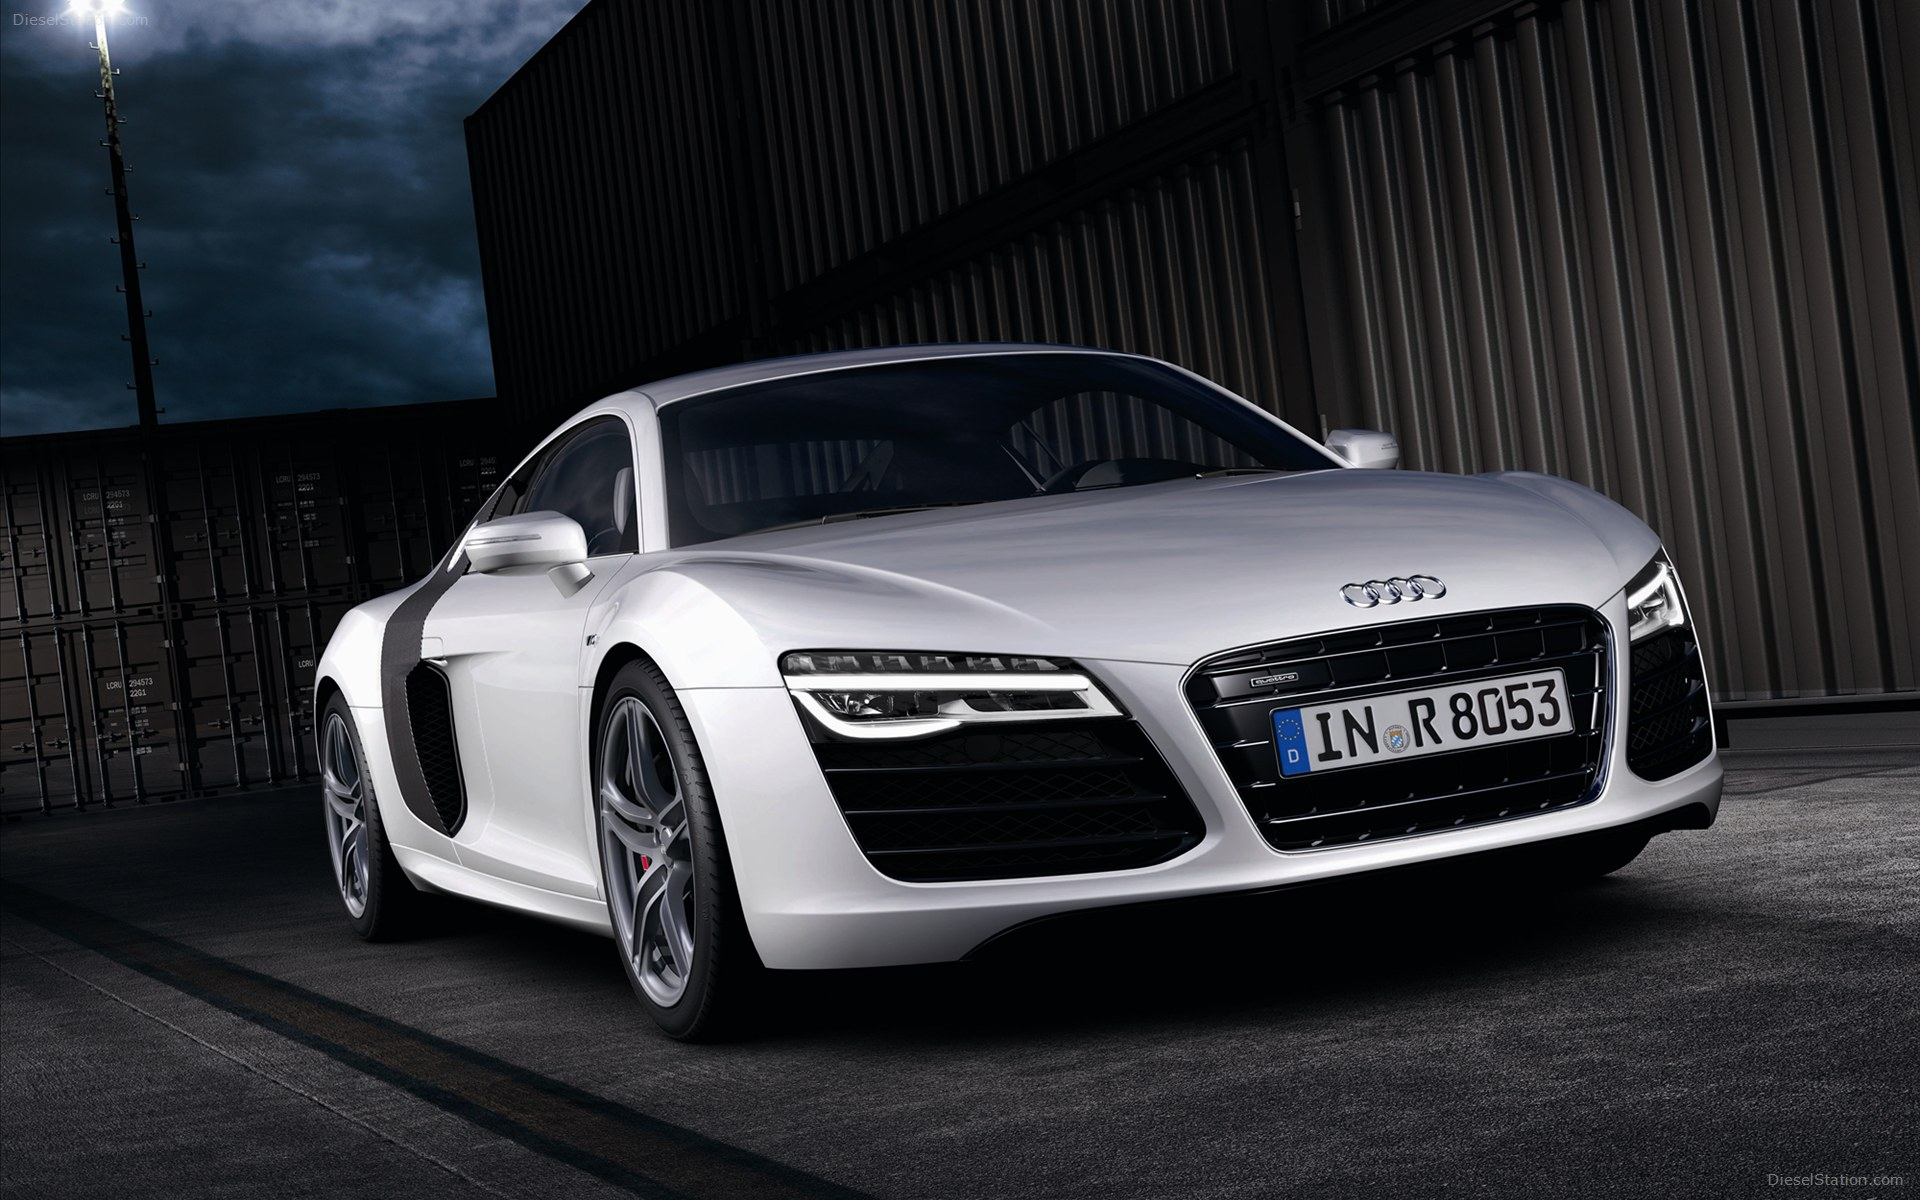 2013 Audi R8 V10 plus 01 Wallpaper 1920x1200